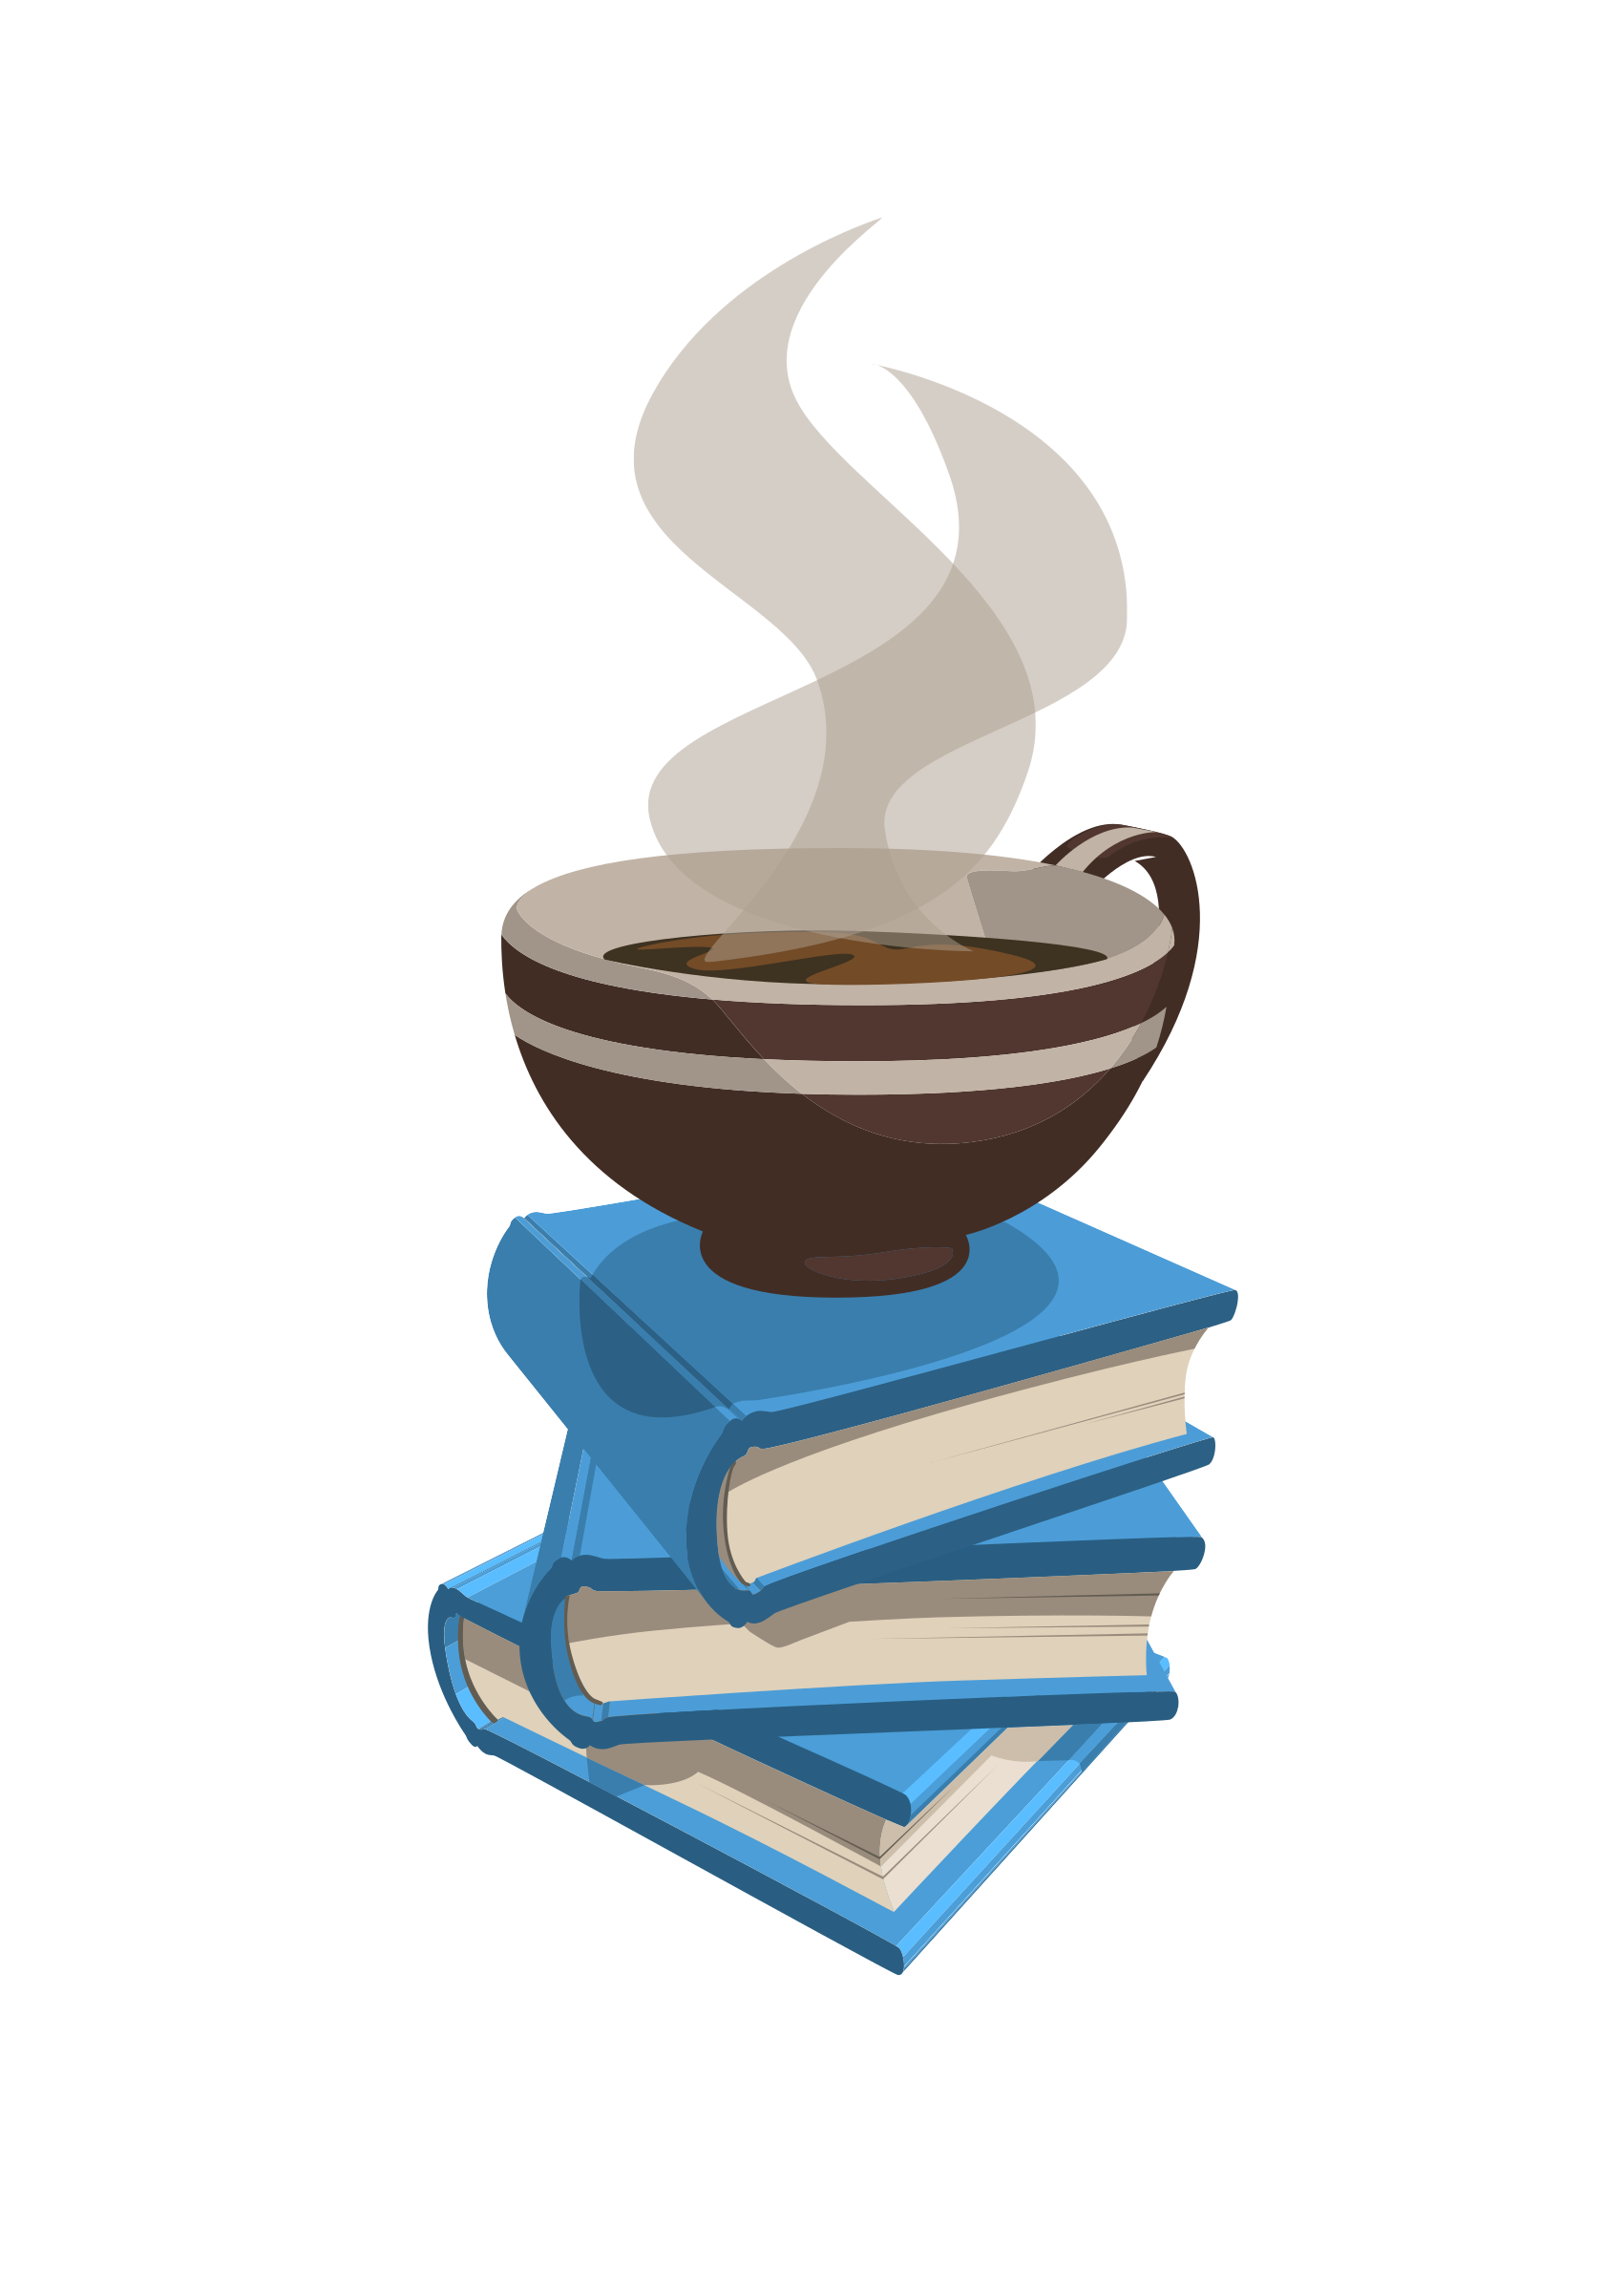 Bobook clipart coffee and Coffee IMAGE Clipart book BIG